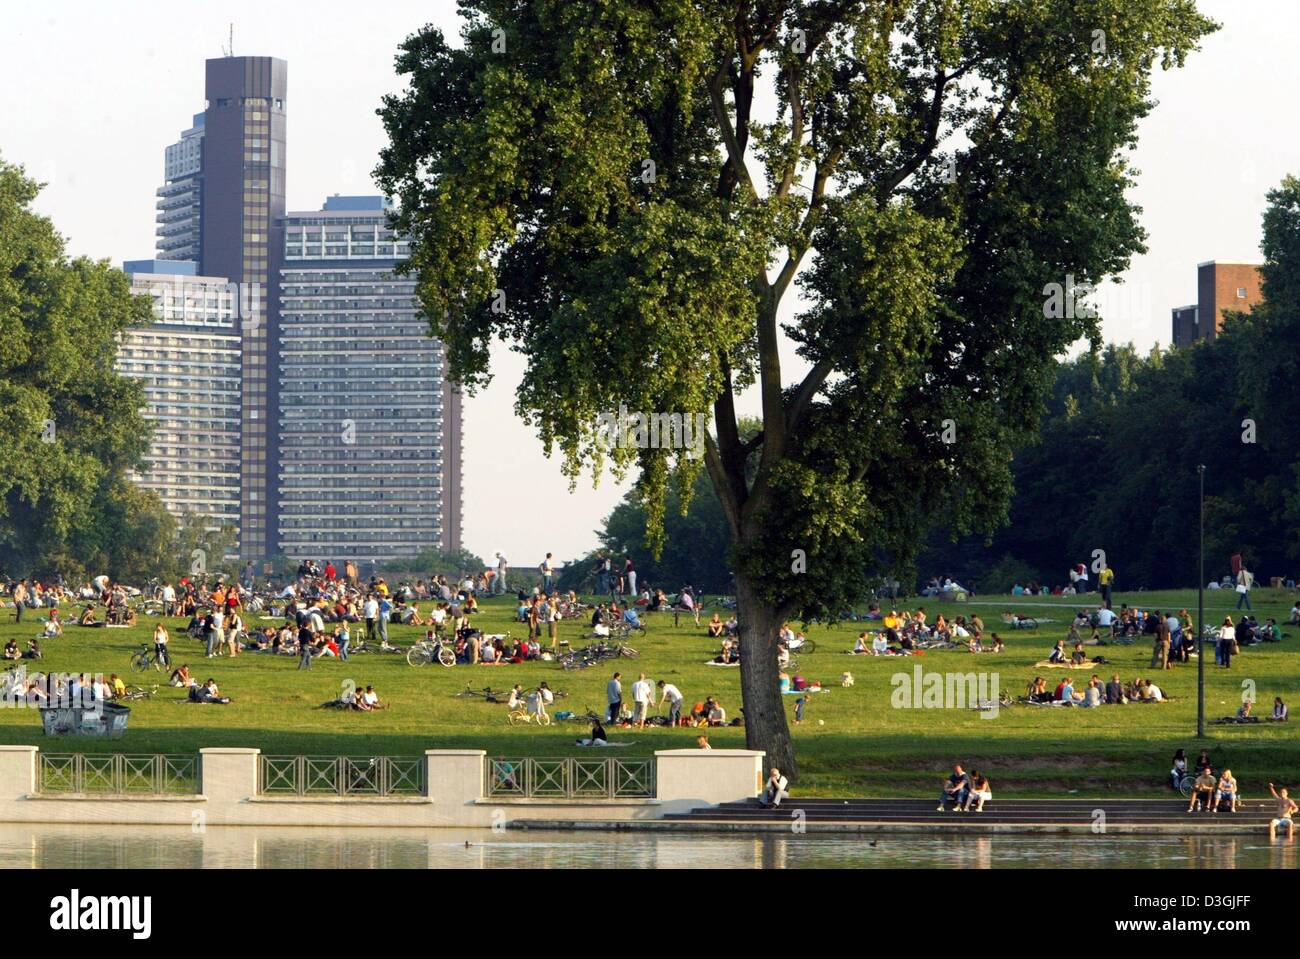 (dpa) - Summer has entered German cities - city dwellers enjoy the warm weather on one of the many green banks along - Stock Image